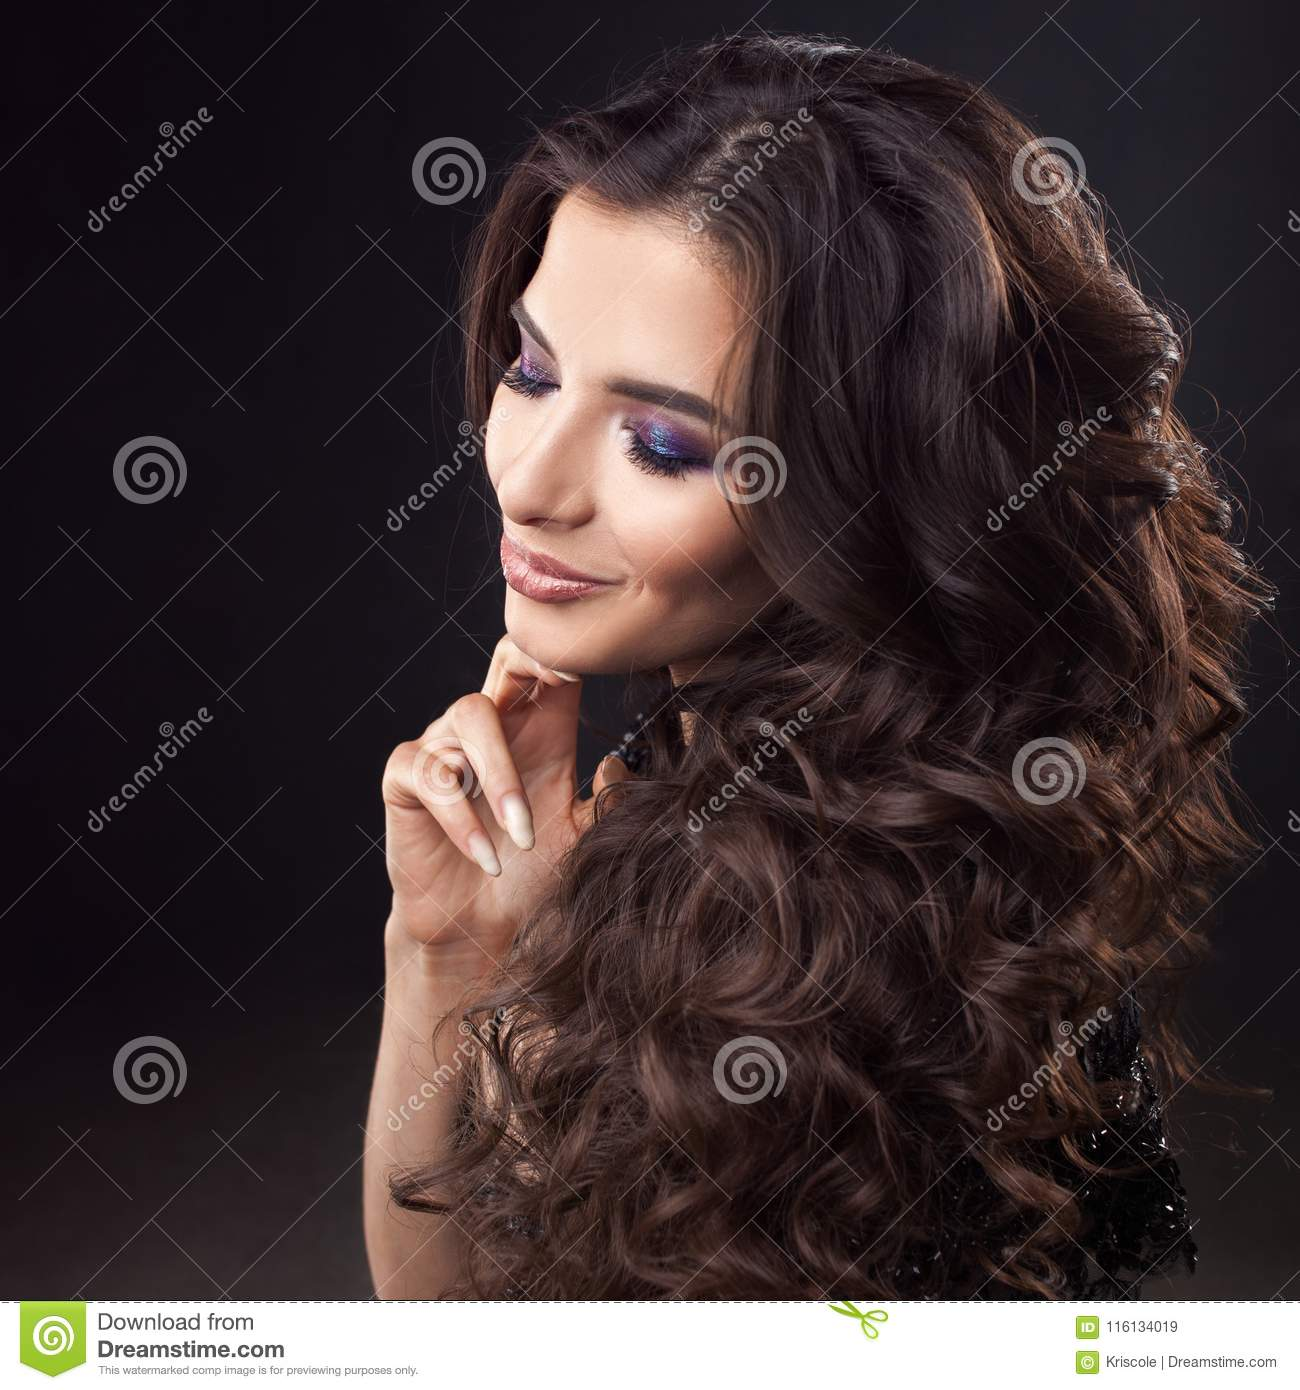 Luxurious hair. Portrait of a young attractive woman with gorgeous curly hair. Attractive brunette